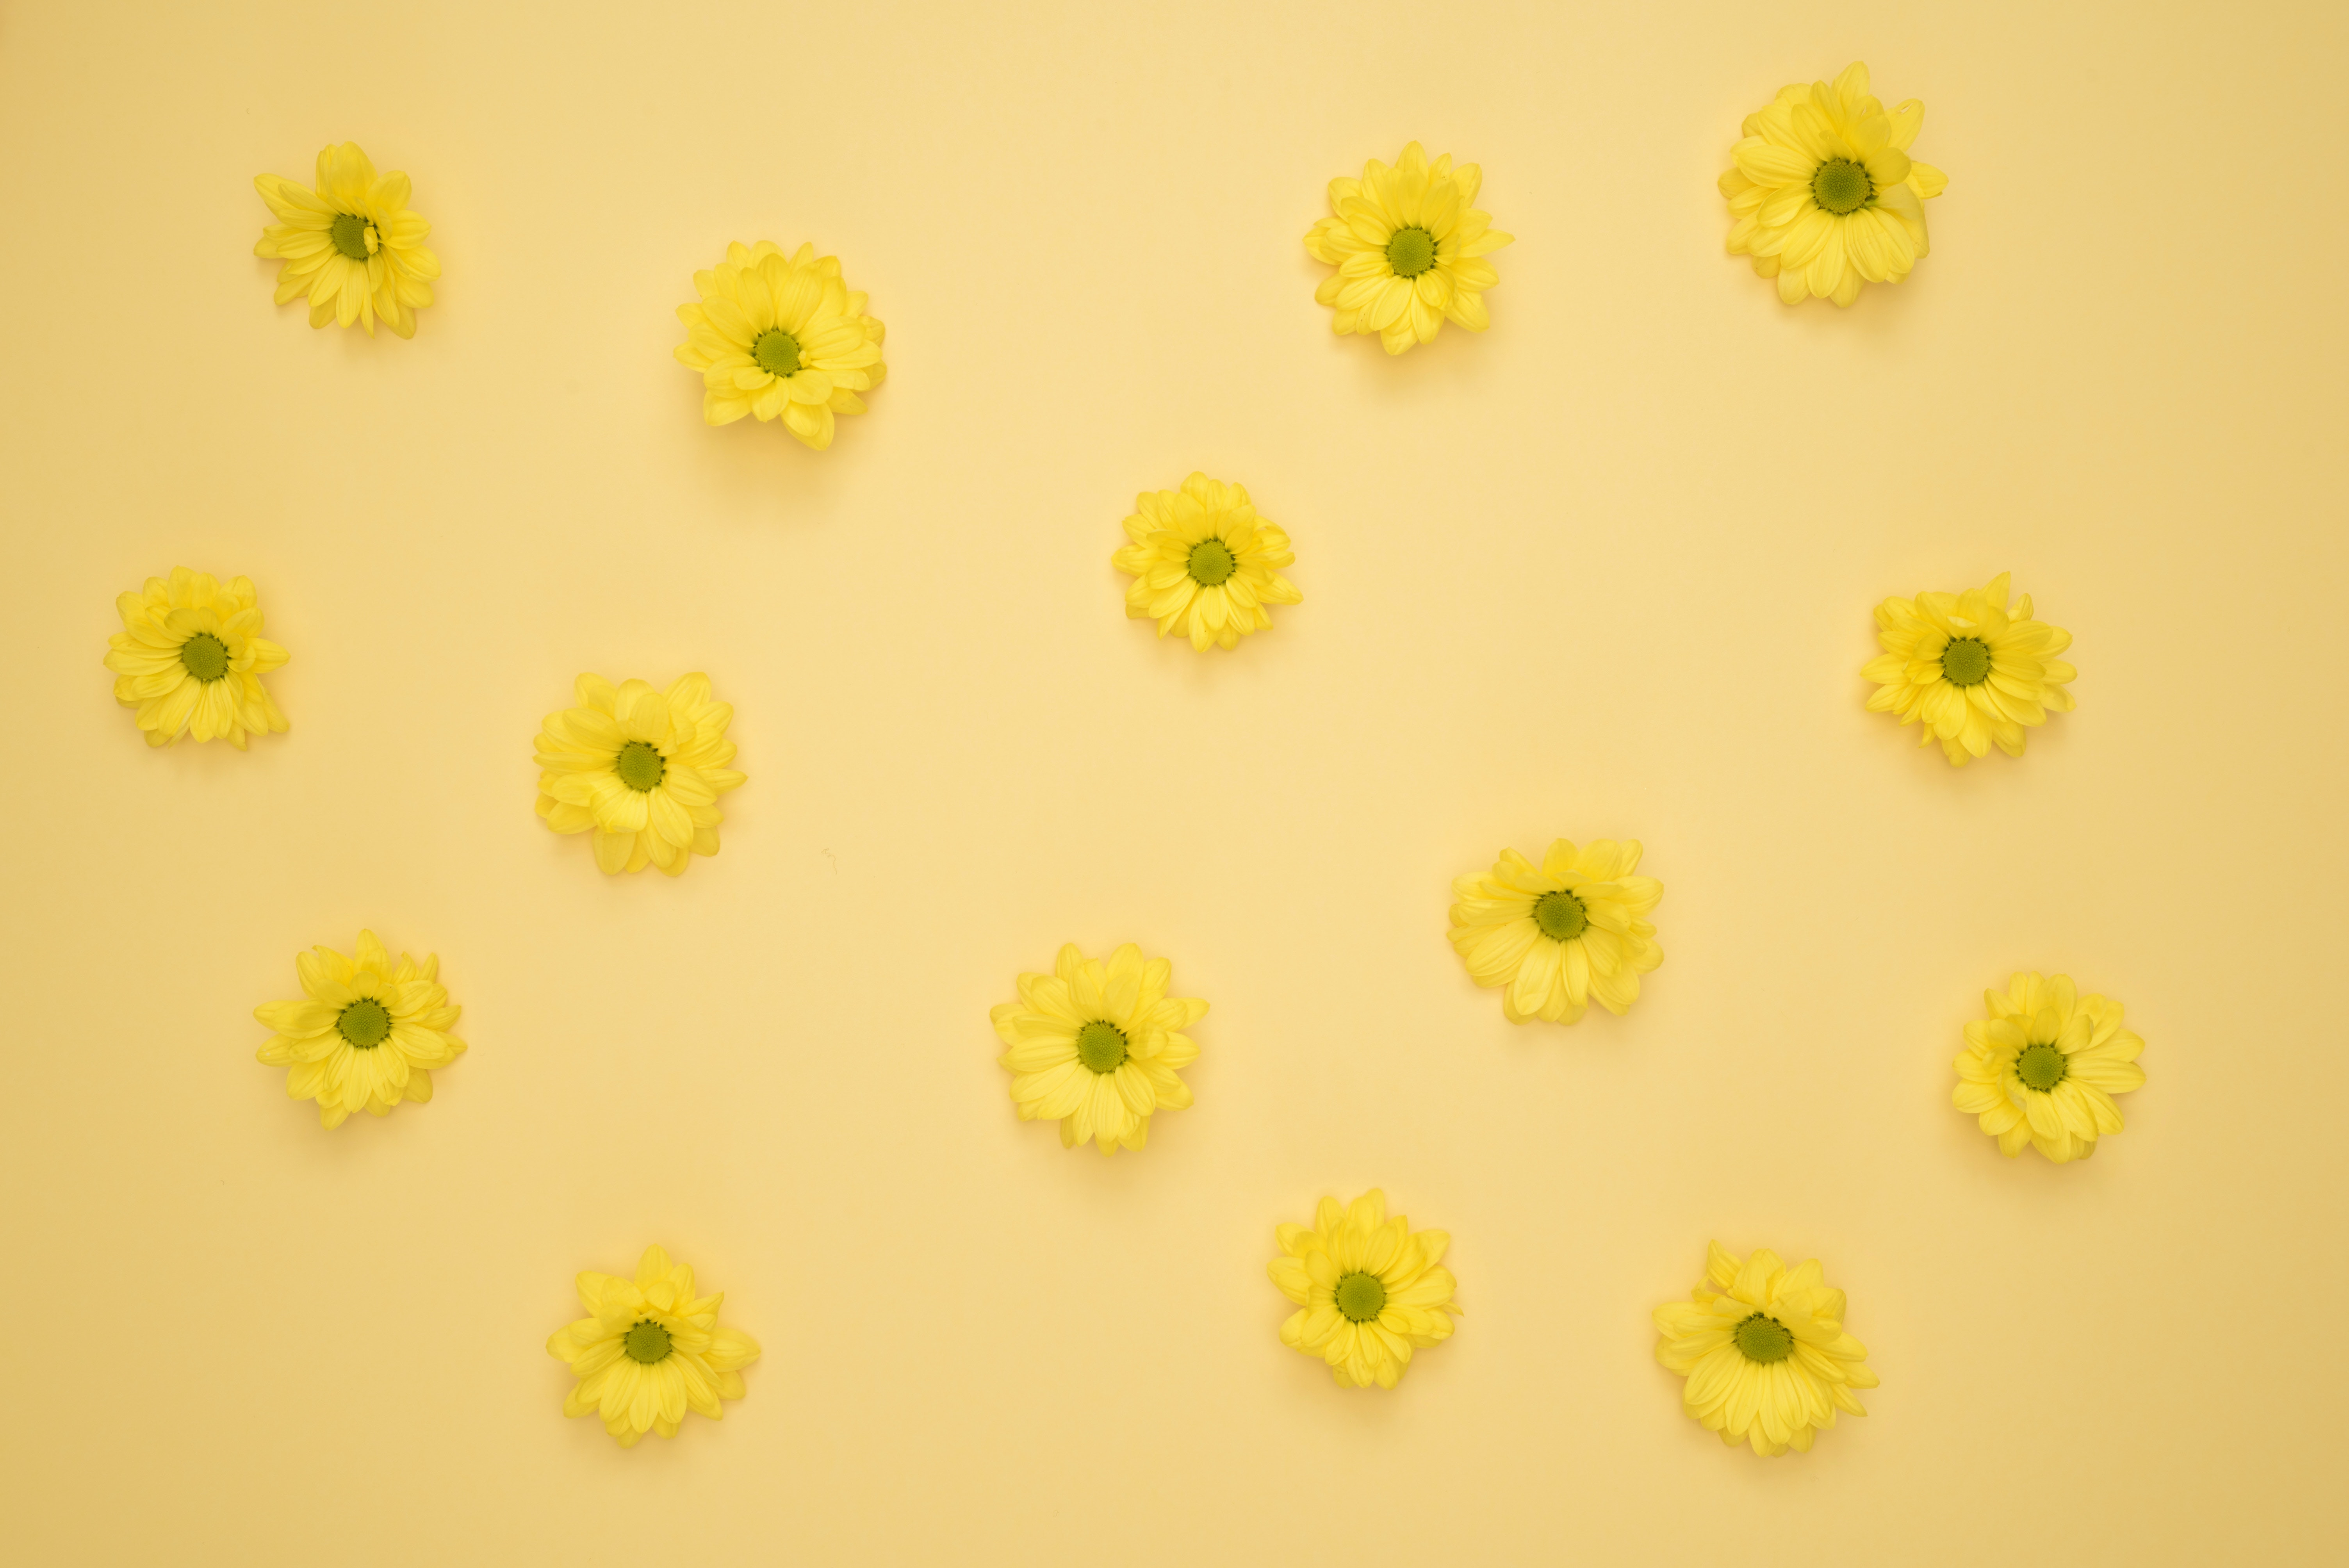 Yellow Daisies Laid on Yellow Surface · Free Stock Photo